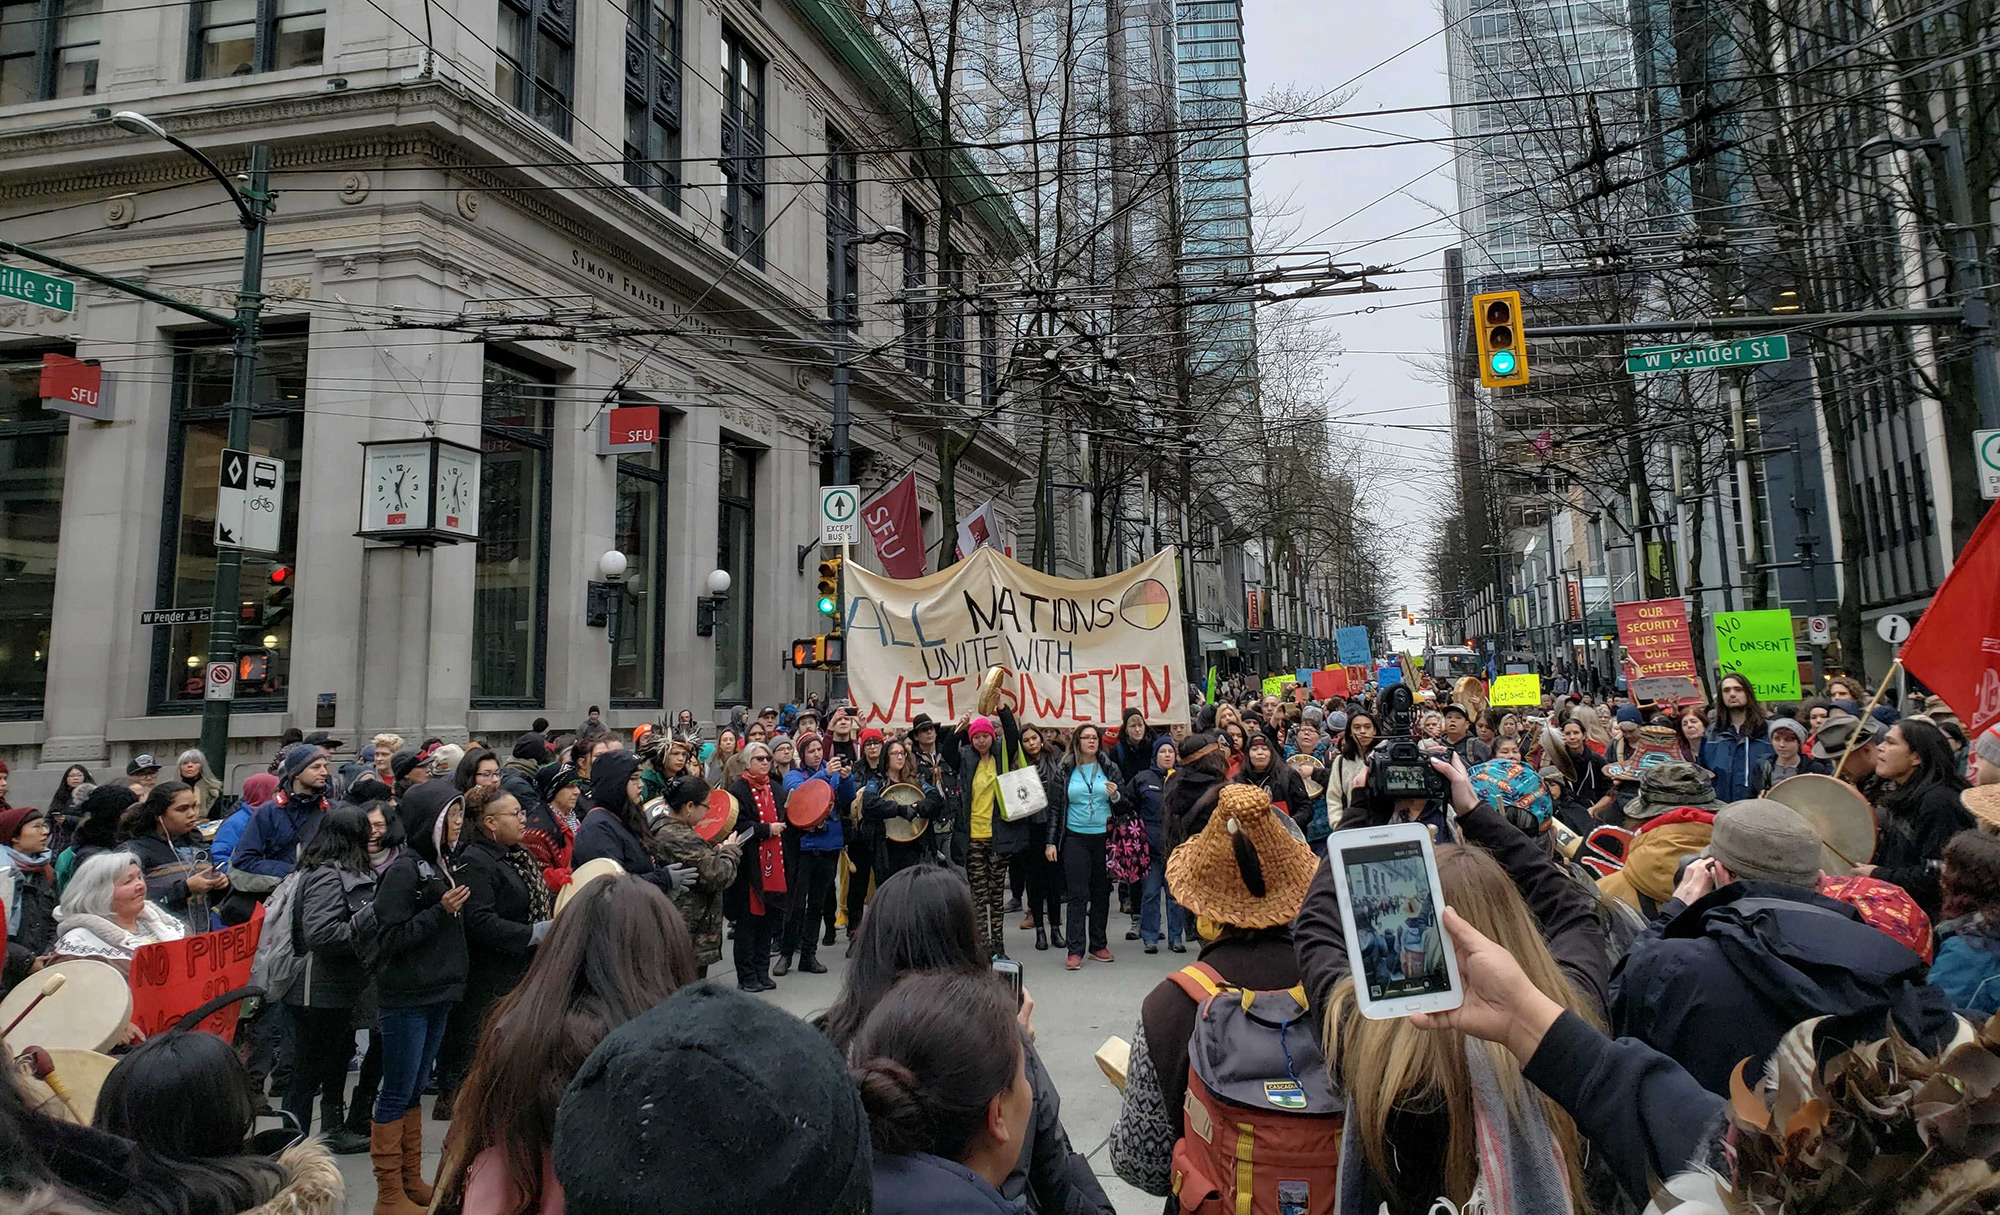 Wet'suwet'en Solidarity rally in Vancouver, Jan. 2019 (Photo: Eugene Kung)